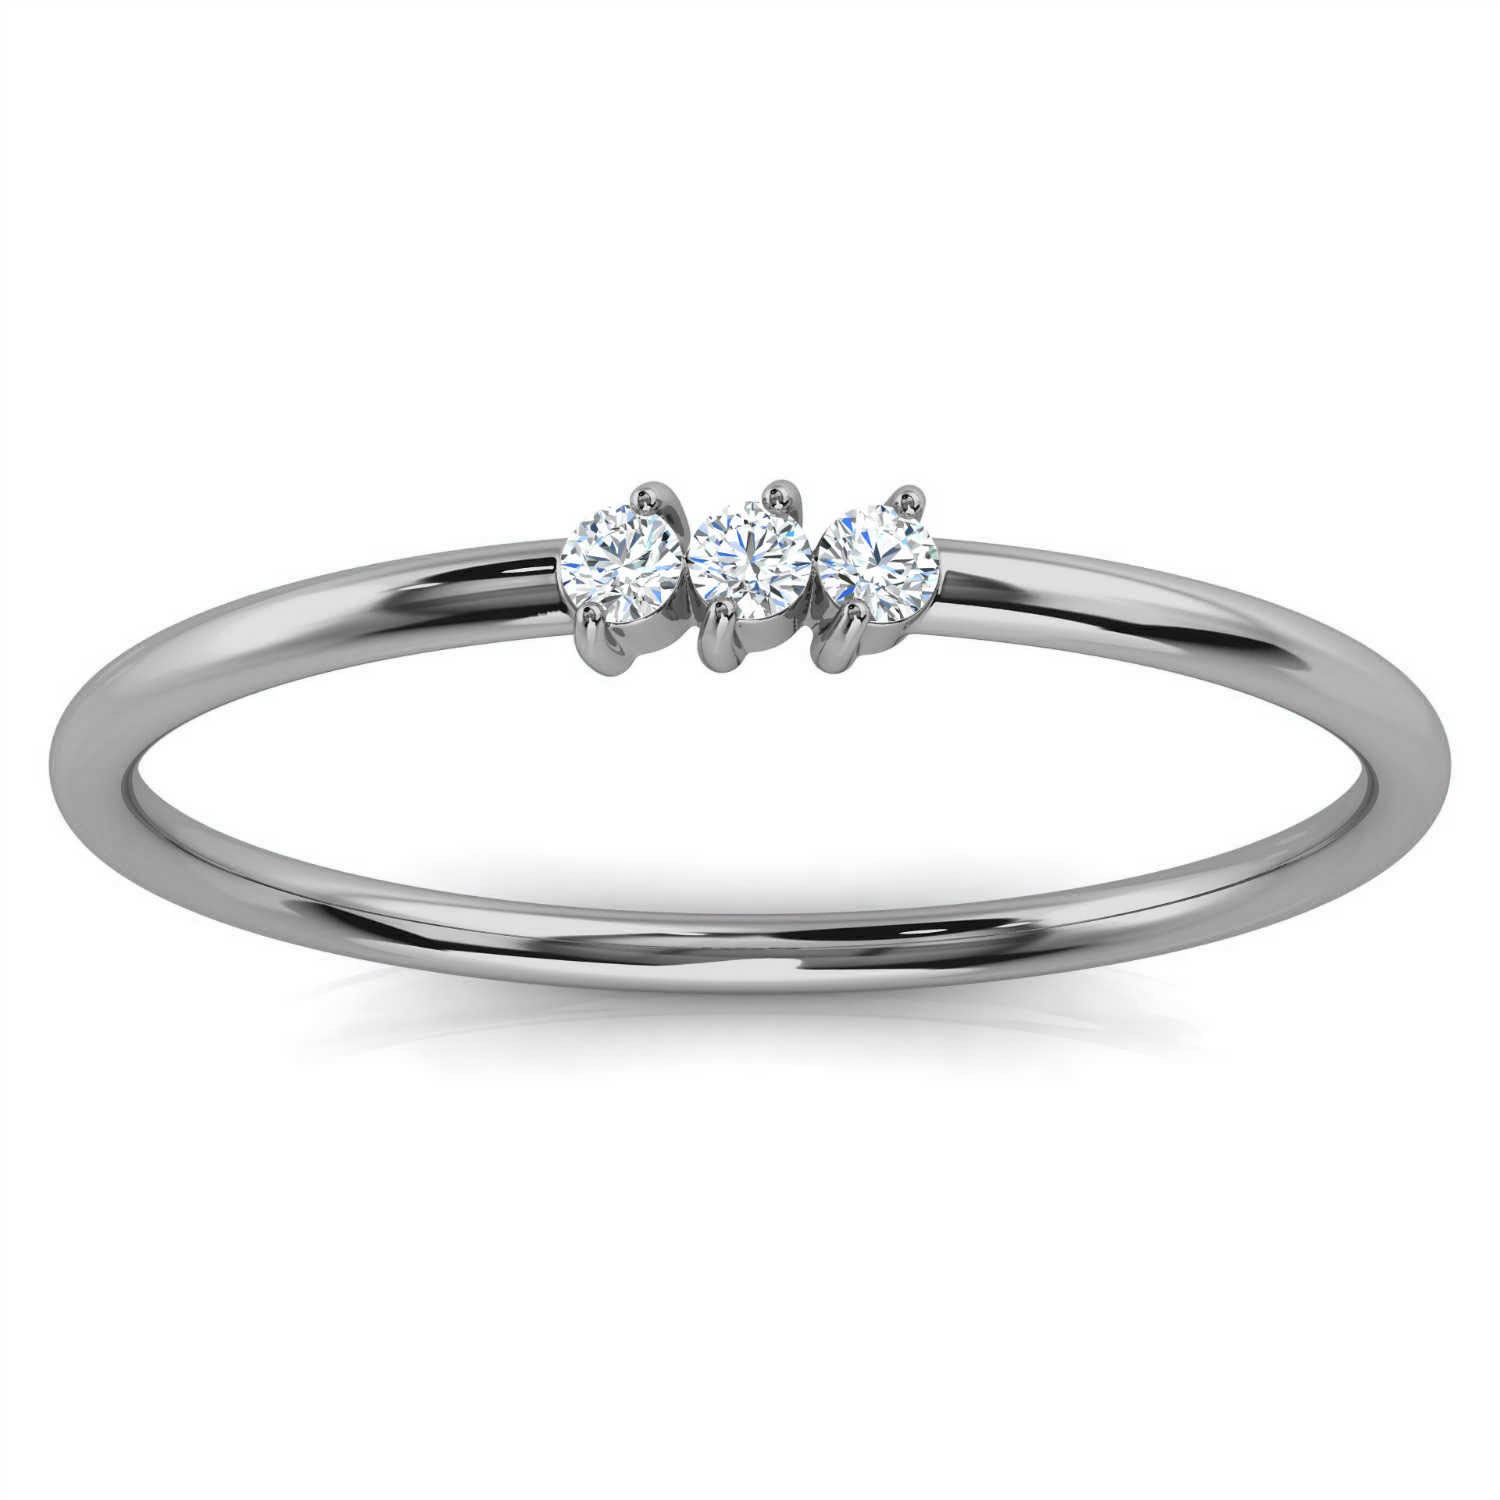 14K White Gold Elissa Minimalist Organic Design Diamond Ring (1/20 ct.tw)